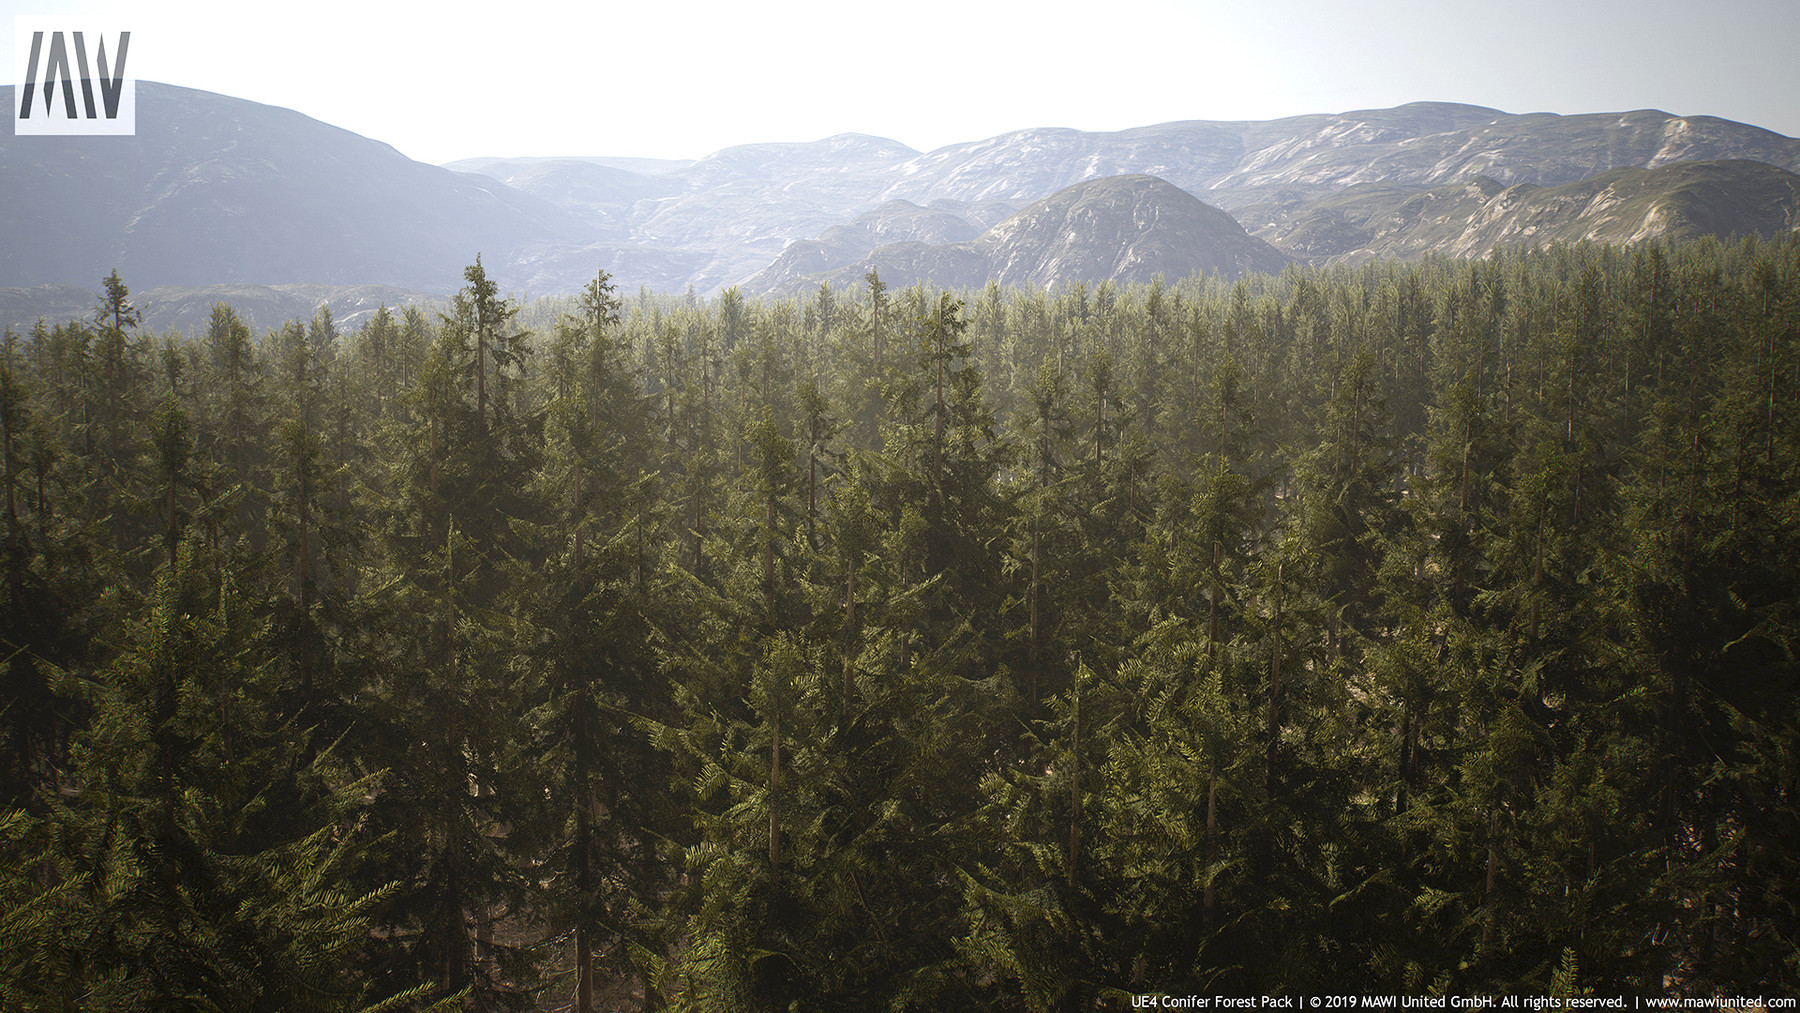 Willi Hammes - UE4 - CONIFER FOREST PACK